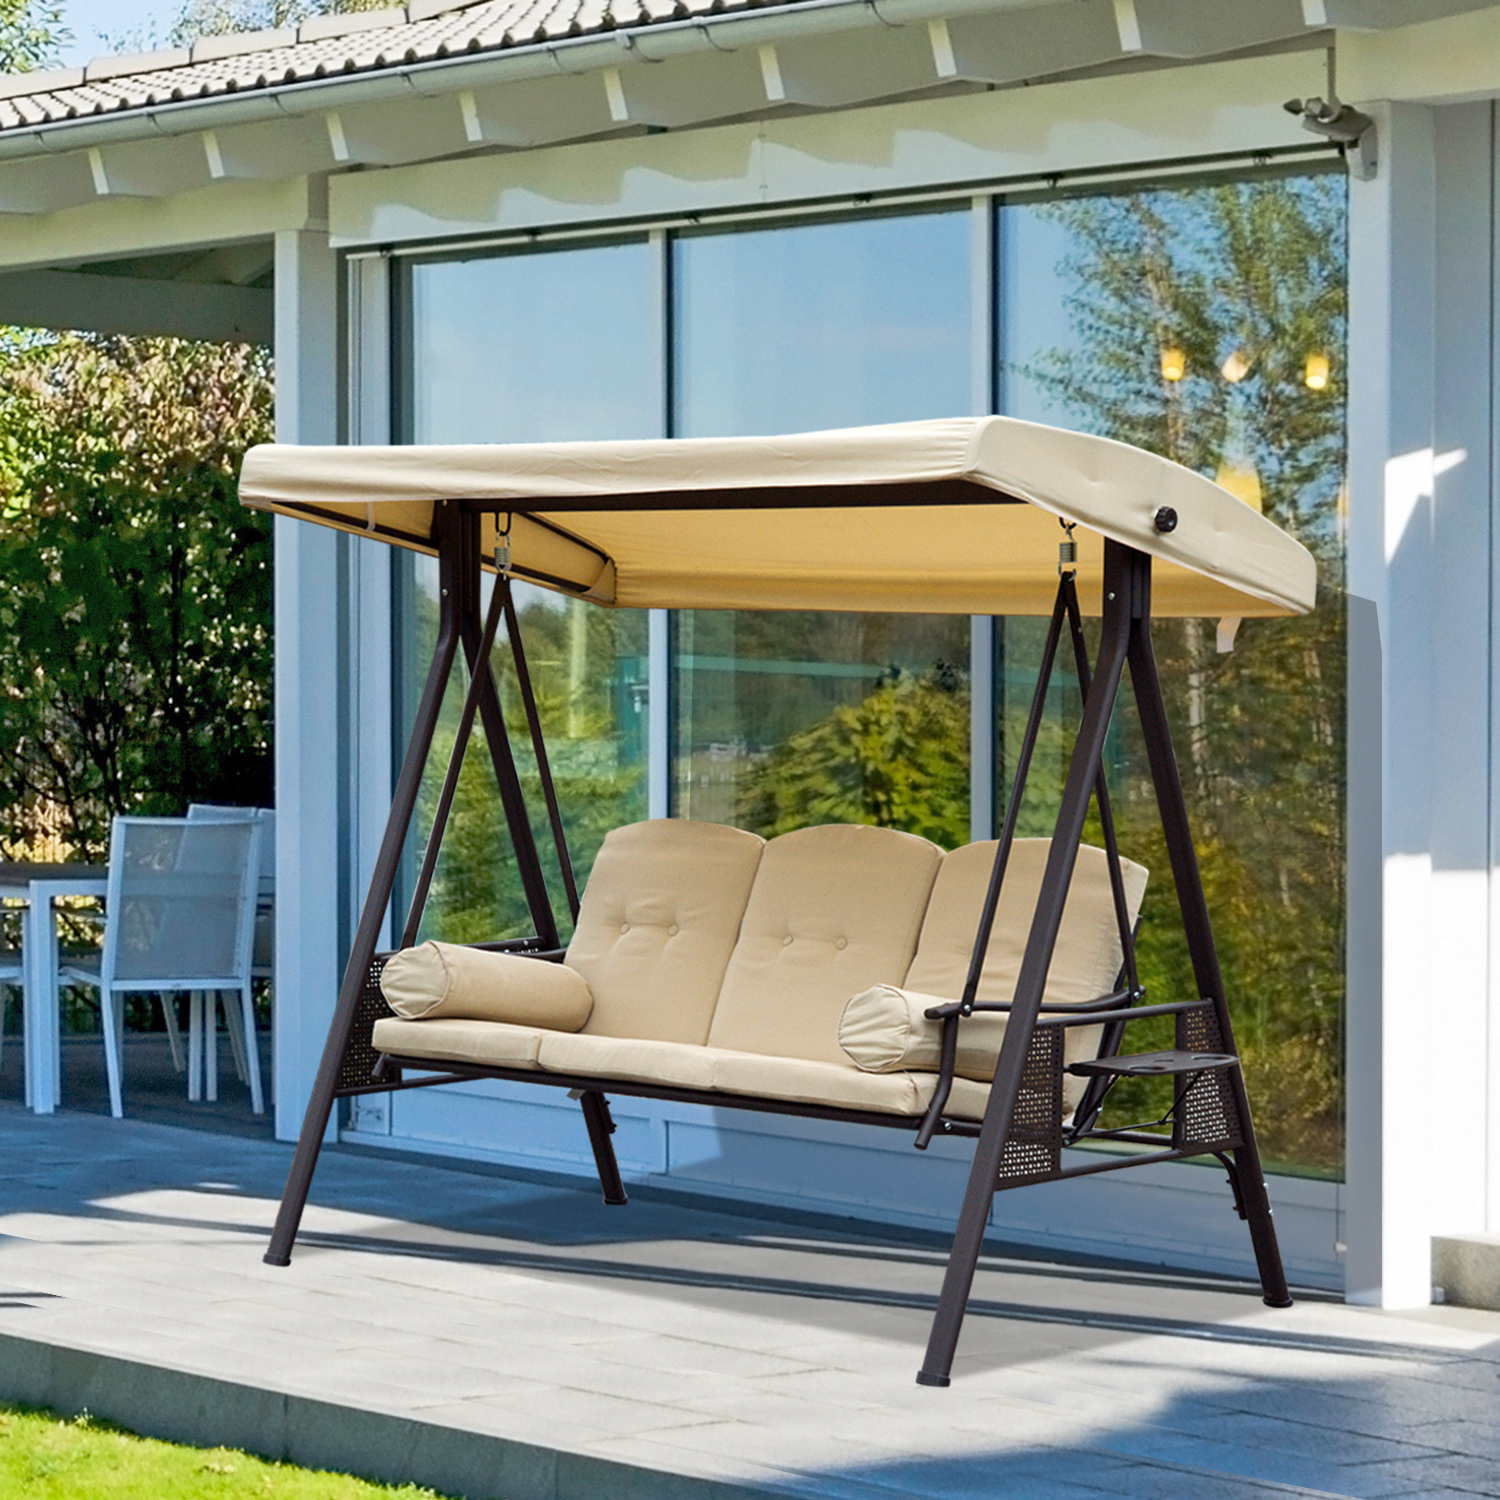 Outsunny 3 Seater Swing Chair Outdoor Metal Bench Garden Hammock